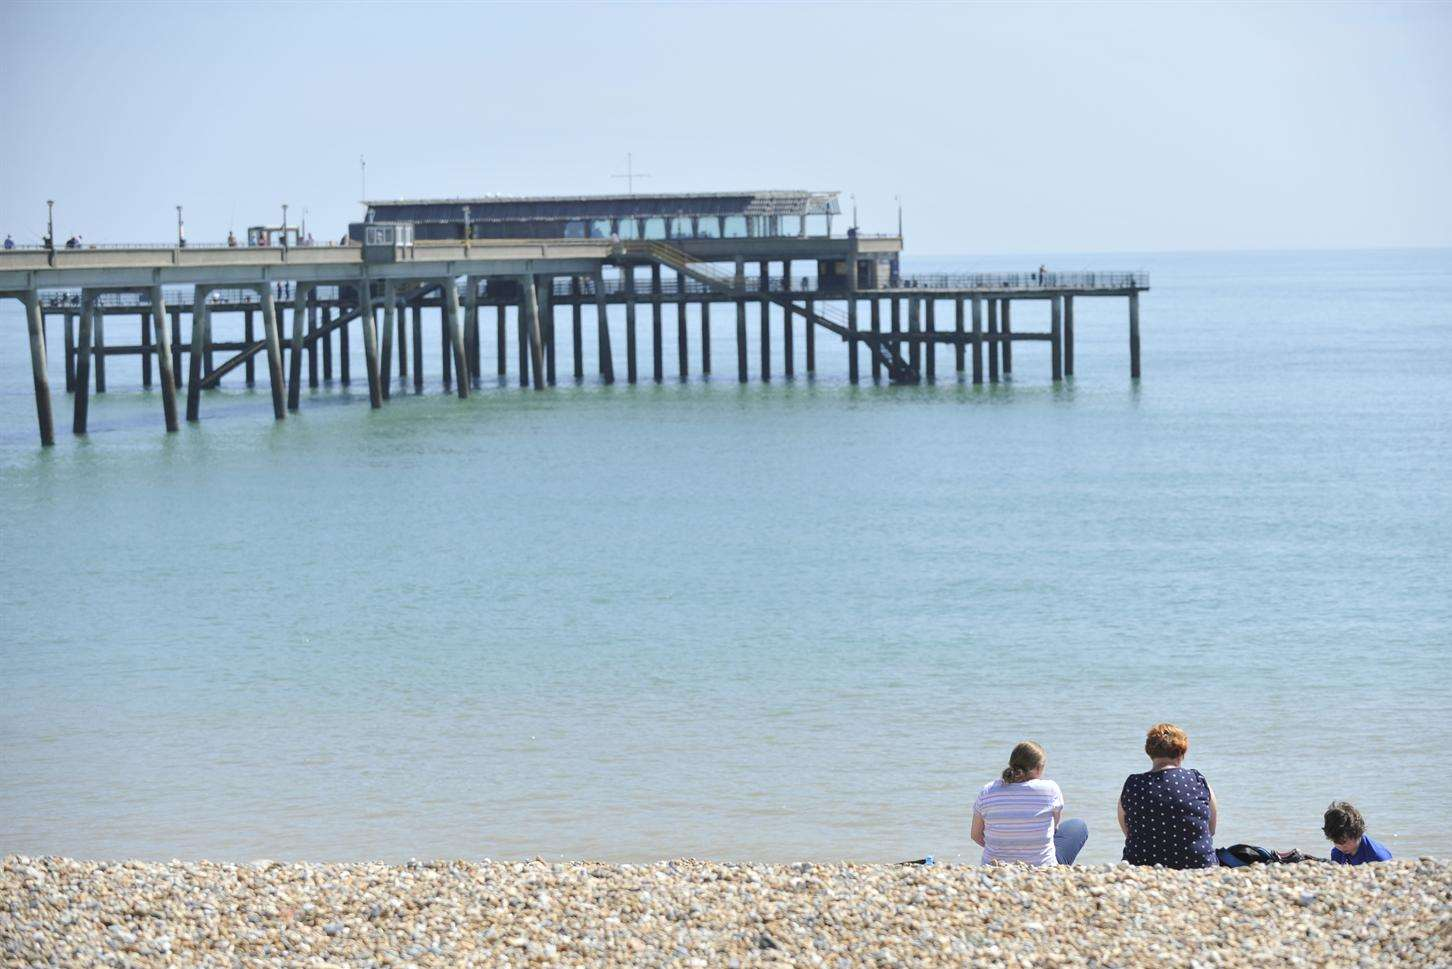 Deal seafront is among the areas of Kent to have been bathed in sunshine. Picture: Tony Flashman